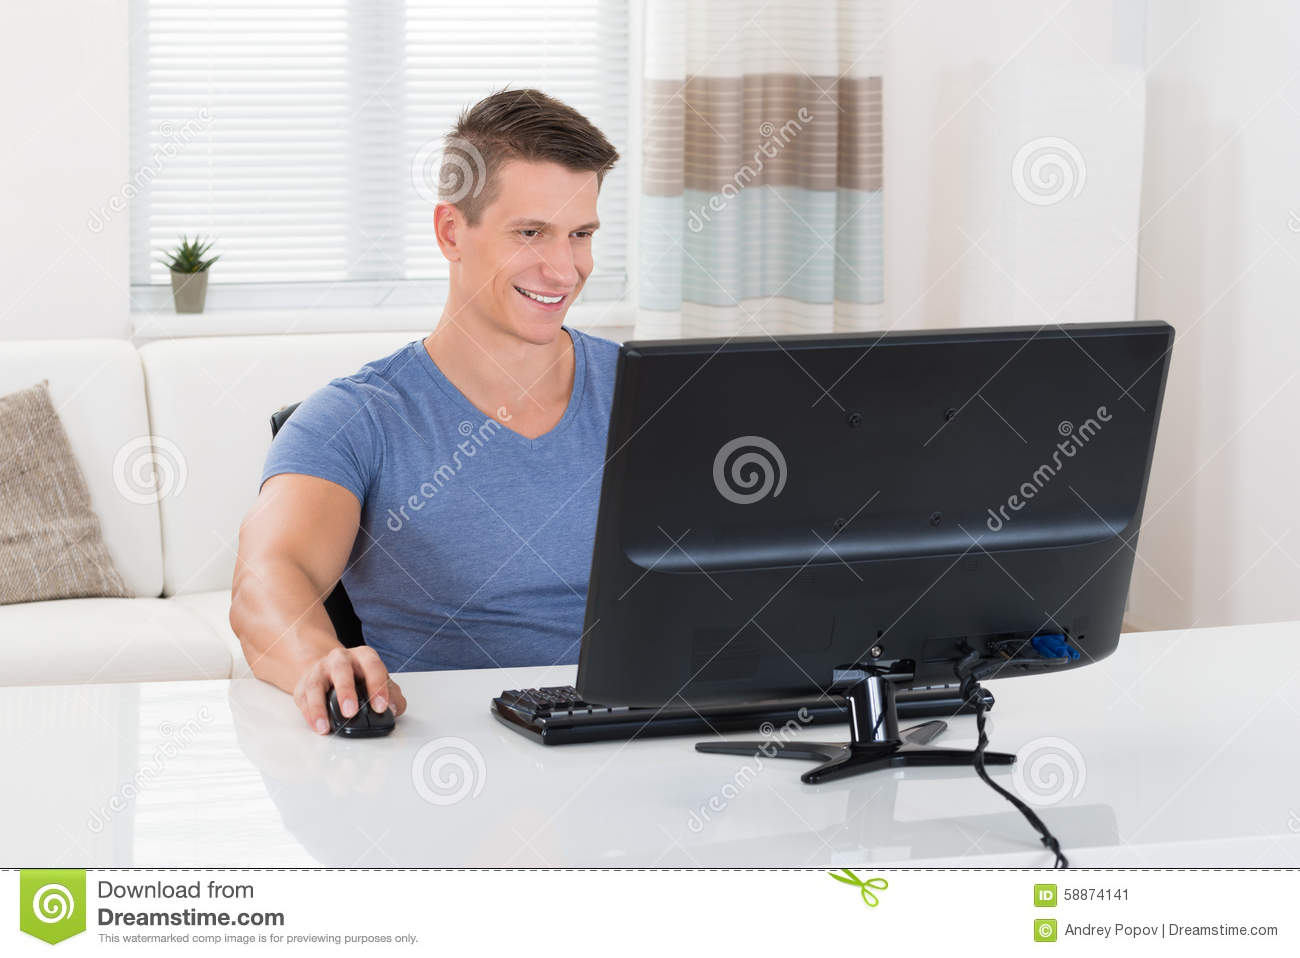 man-using-desktop-computer-young-happy-living-room-58874141.jpg